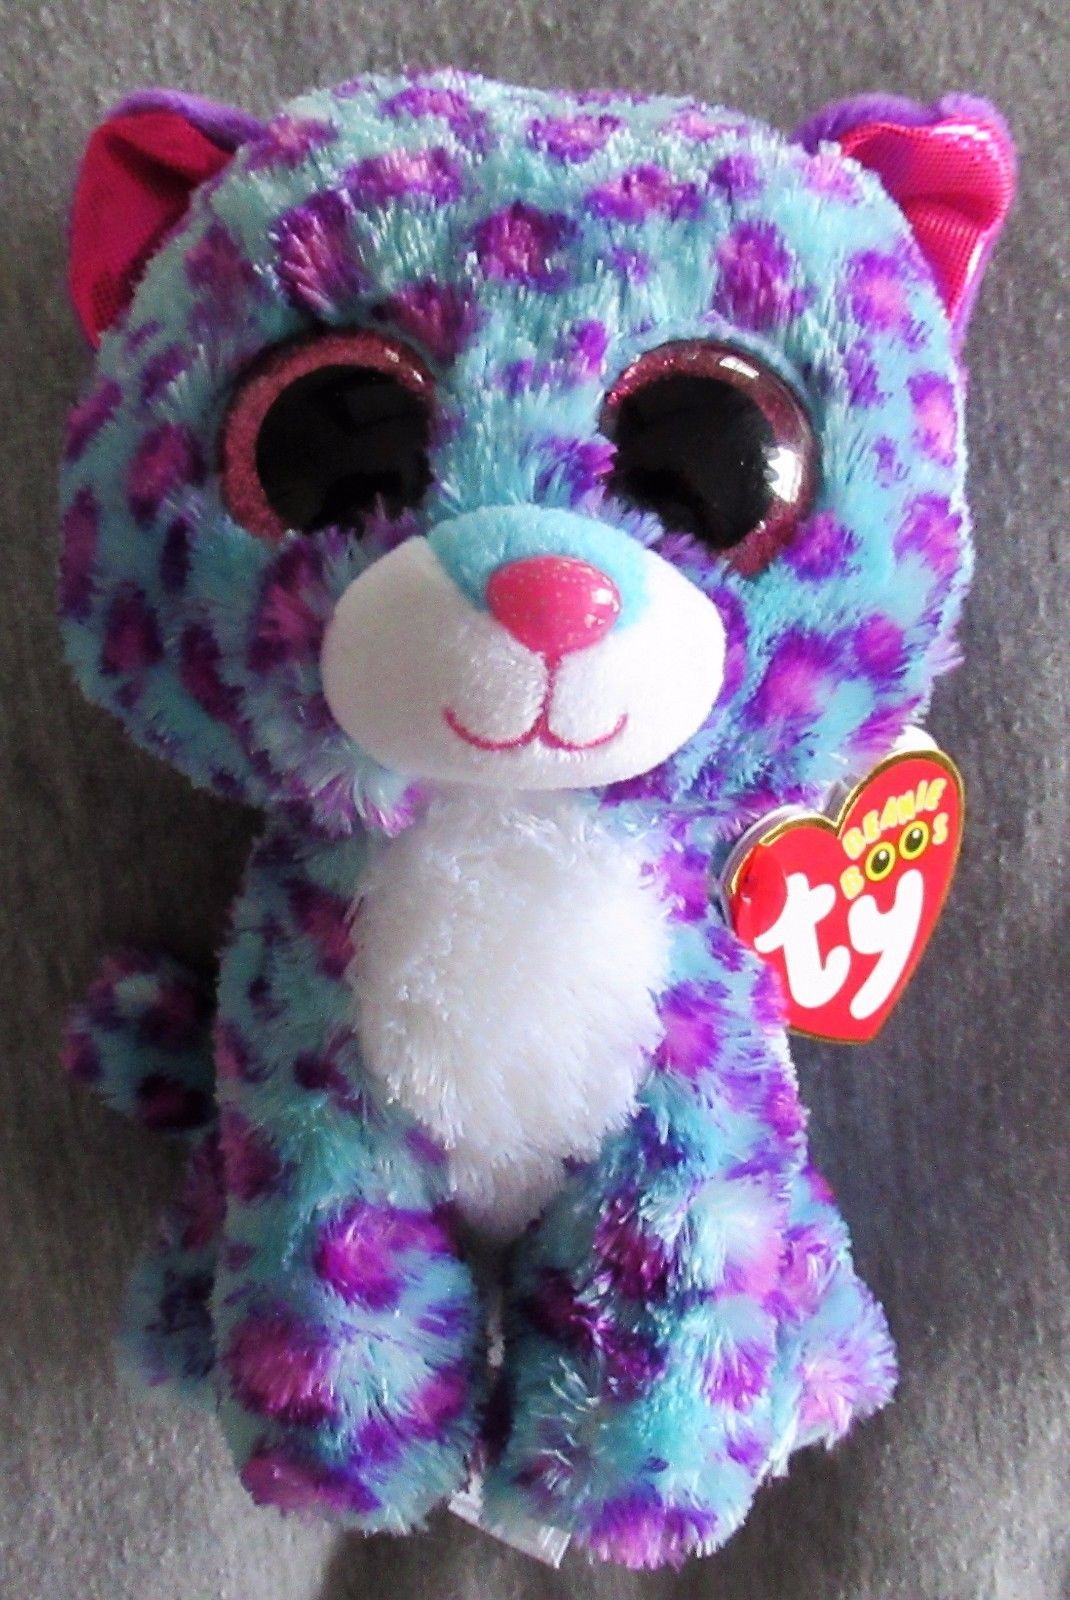 bc7a06a460a Ty 19203  Dreamer - Ty Beanie Boo Justice Exclusive The Leopard 6 - New  With Mint Tags -  BUY IT NOW ONLY   25.49 on  eBay  dreamer  beanie  justice  ...